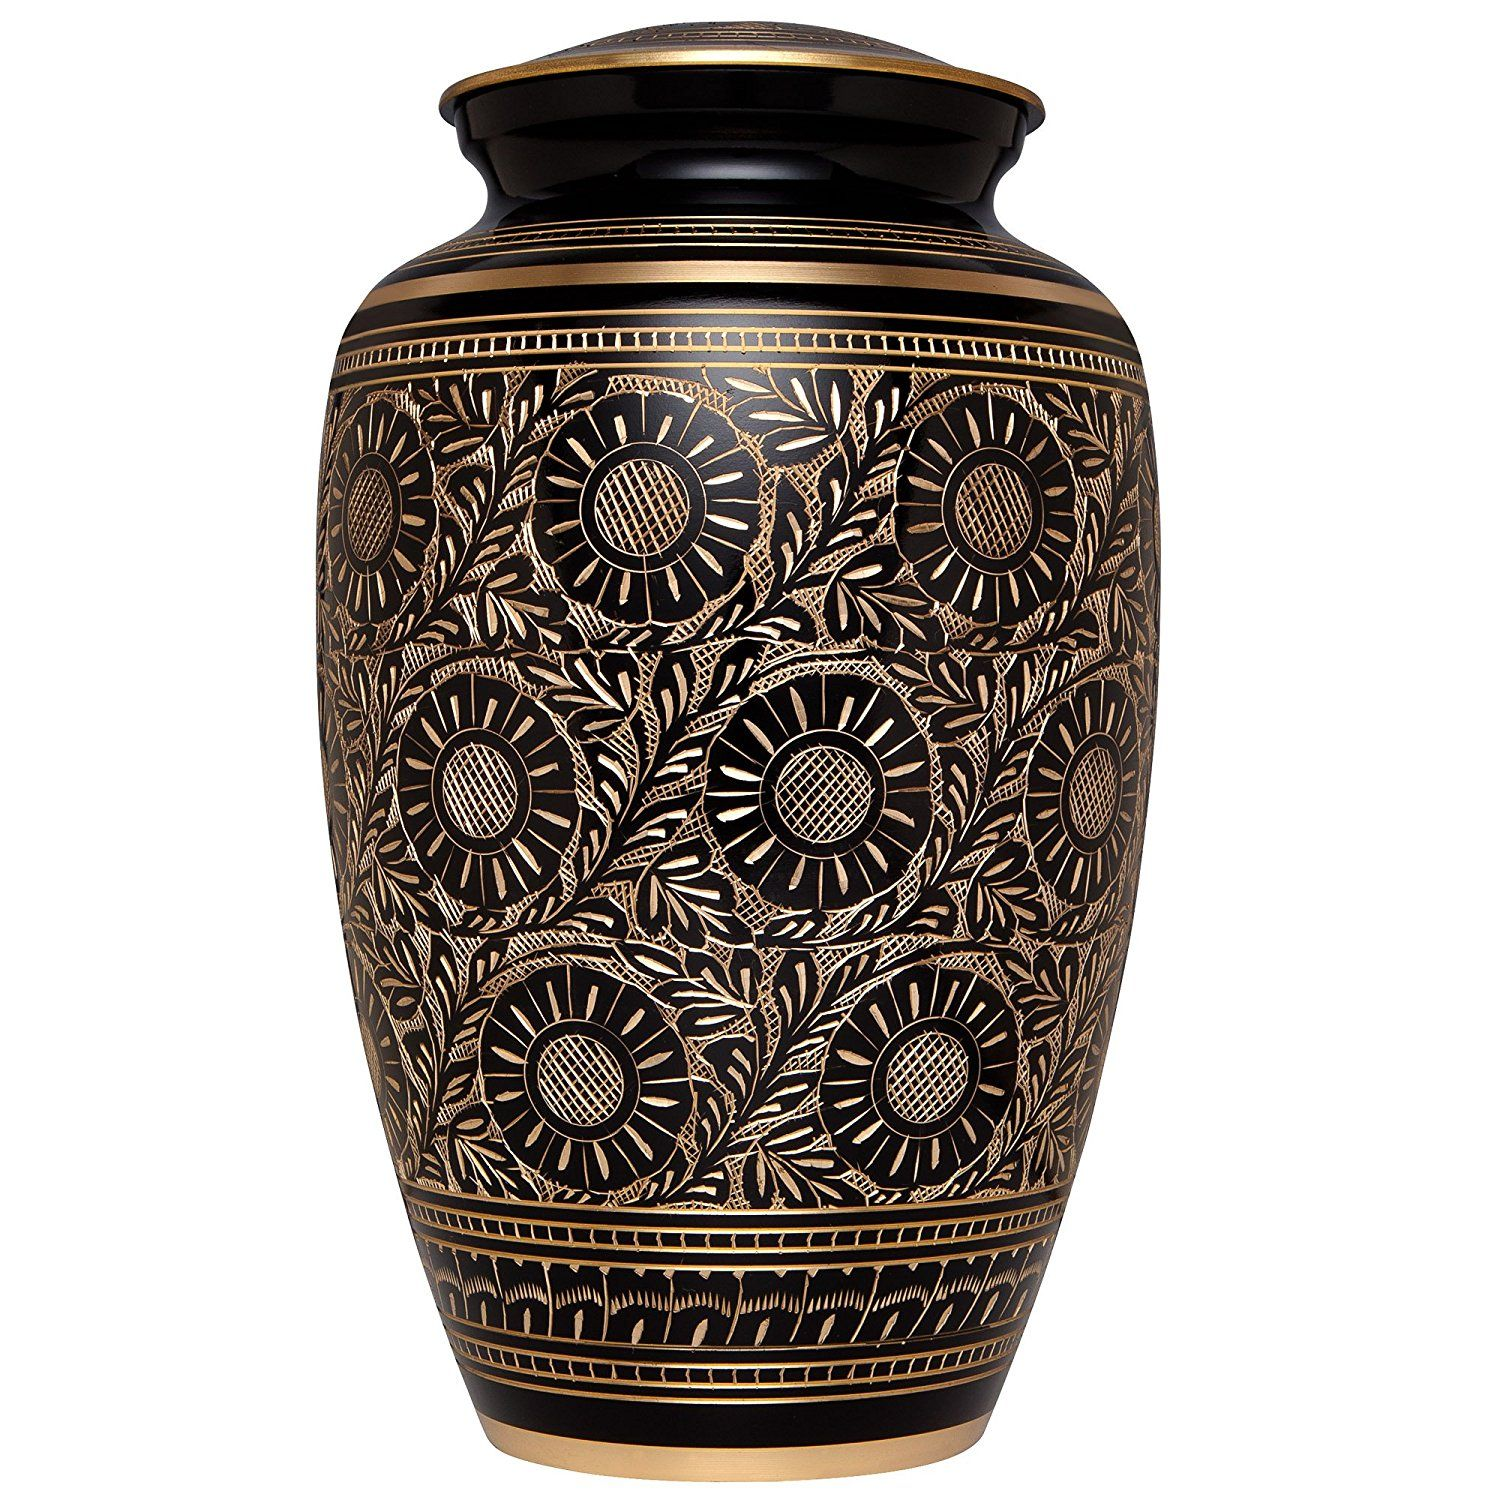 Cremation Urn for Human Ashes Leblanc Model Suitable for Cemetery Burial or Niche Pearl White Funeral Urn by Liliane Large Size fits Remains of Adults up to 200 lbs Hand Made in Brass